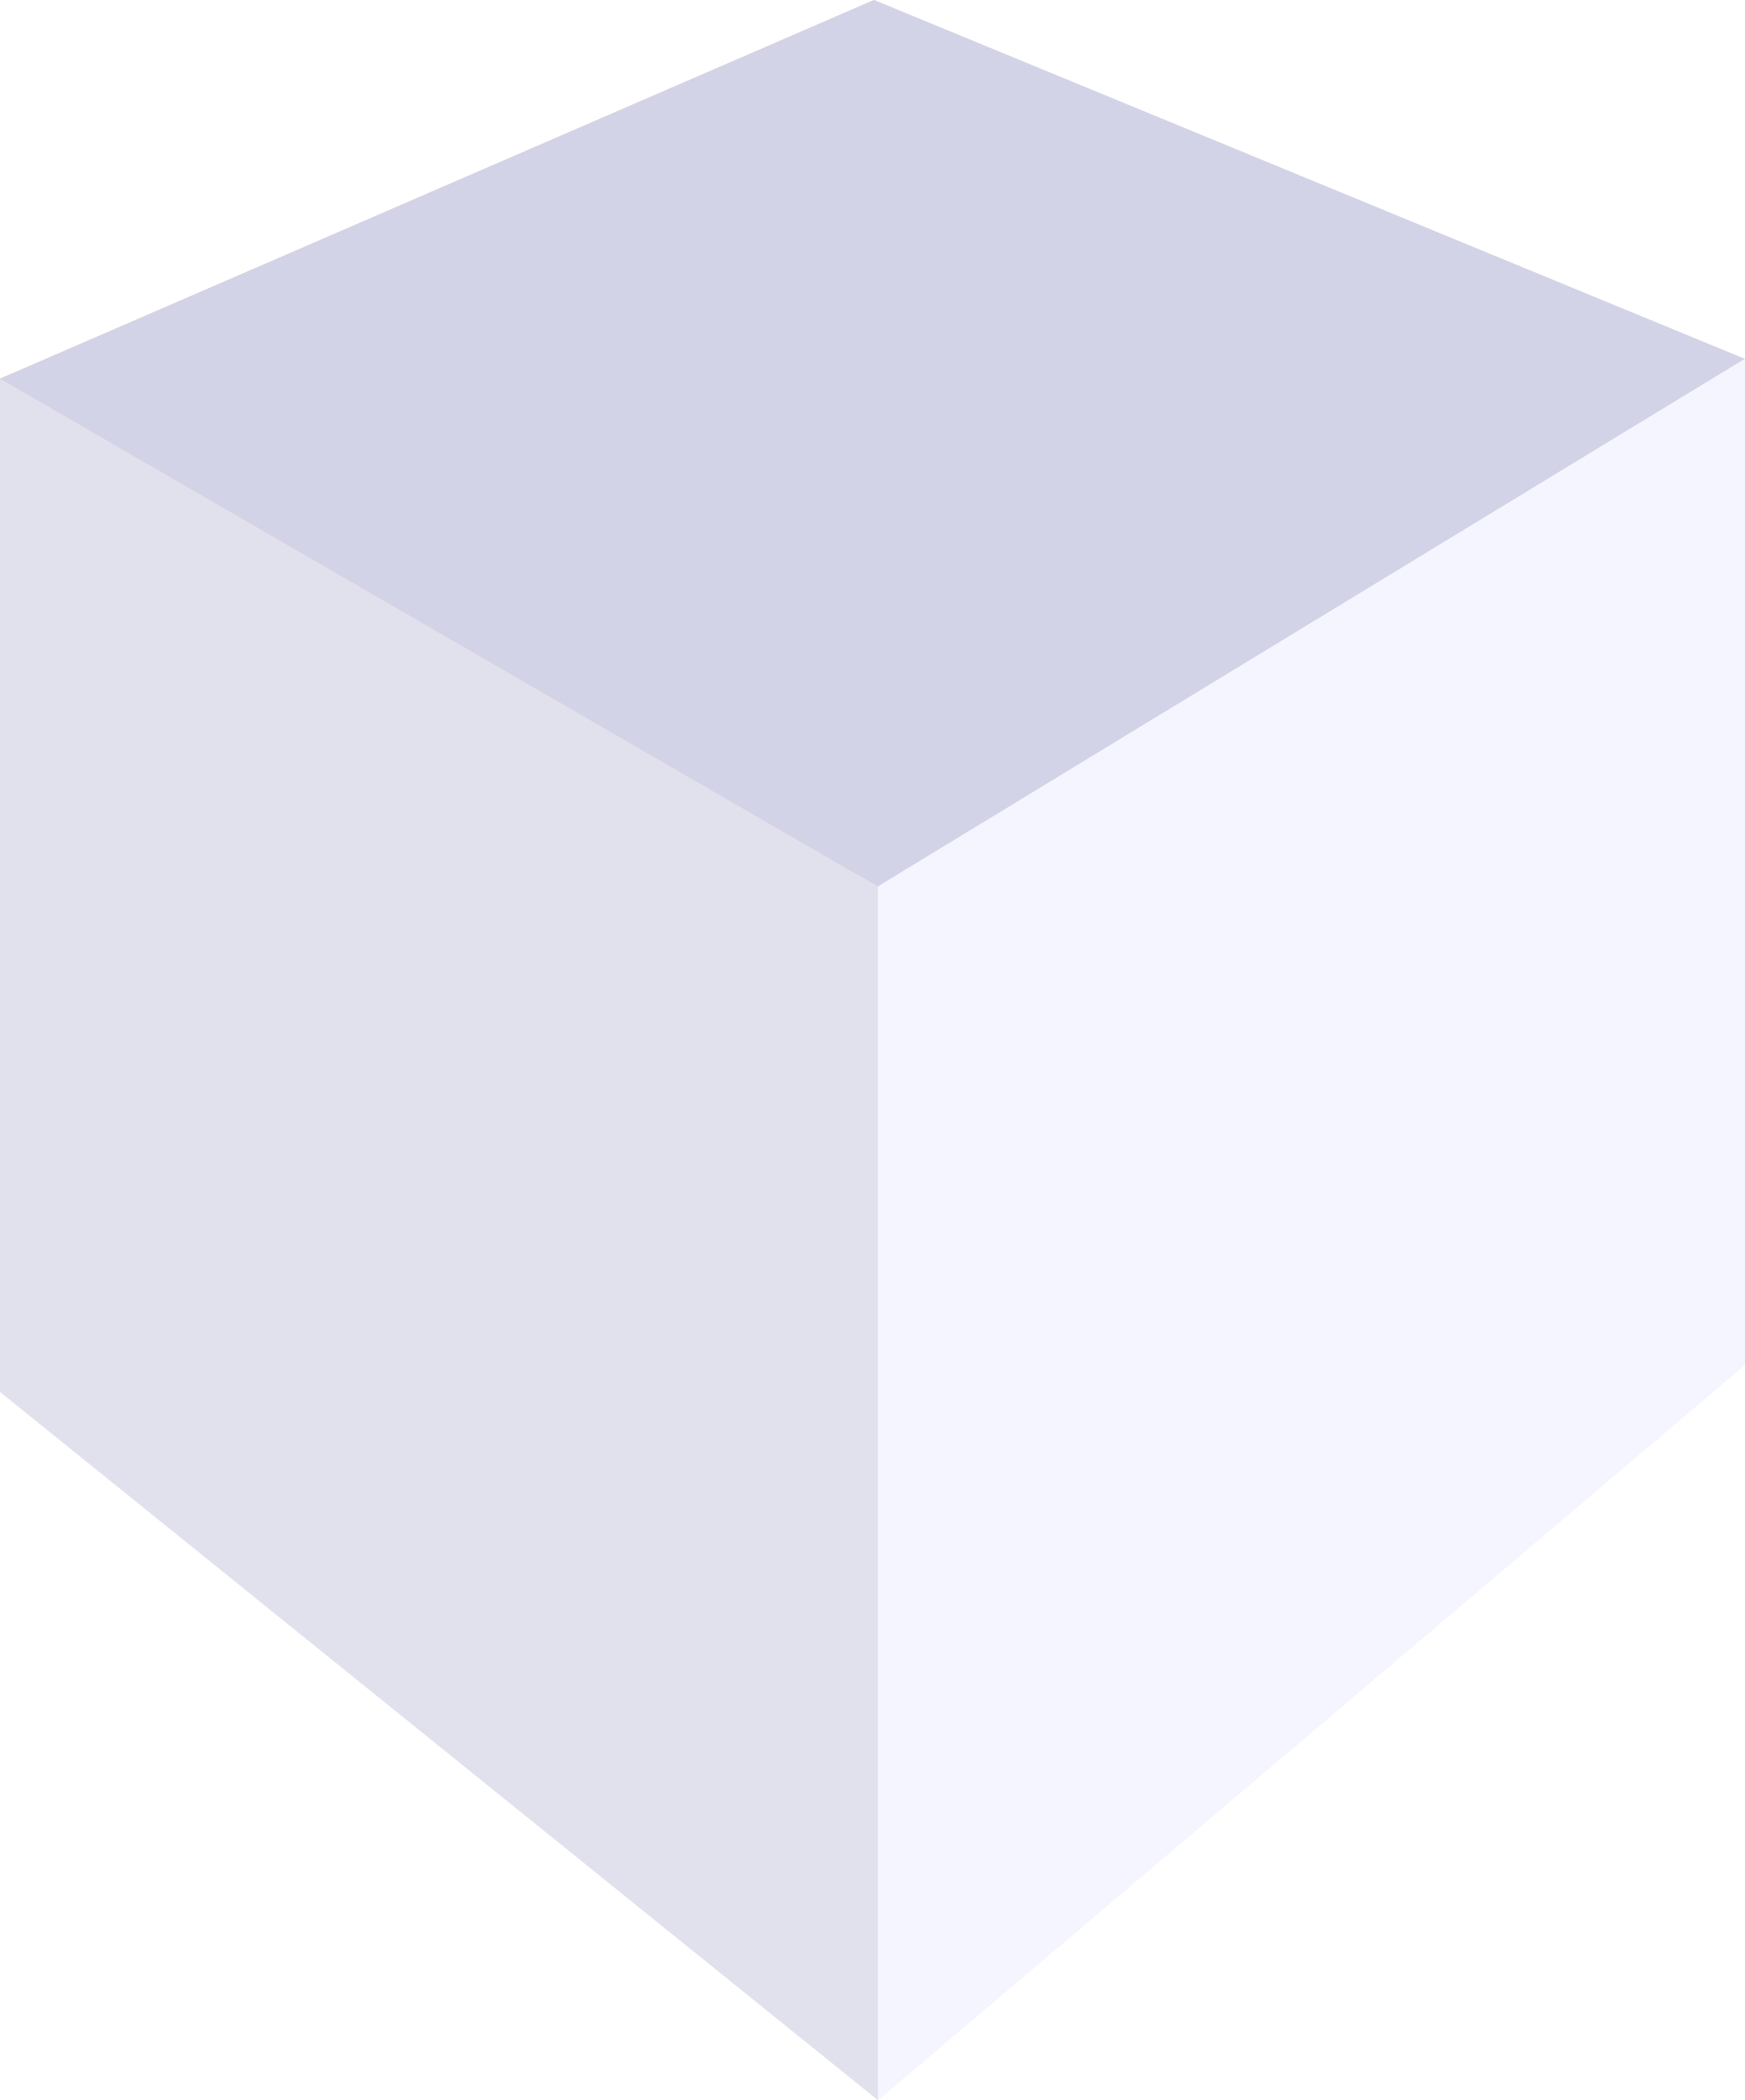 Cube PNG - 23191